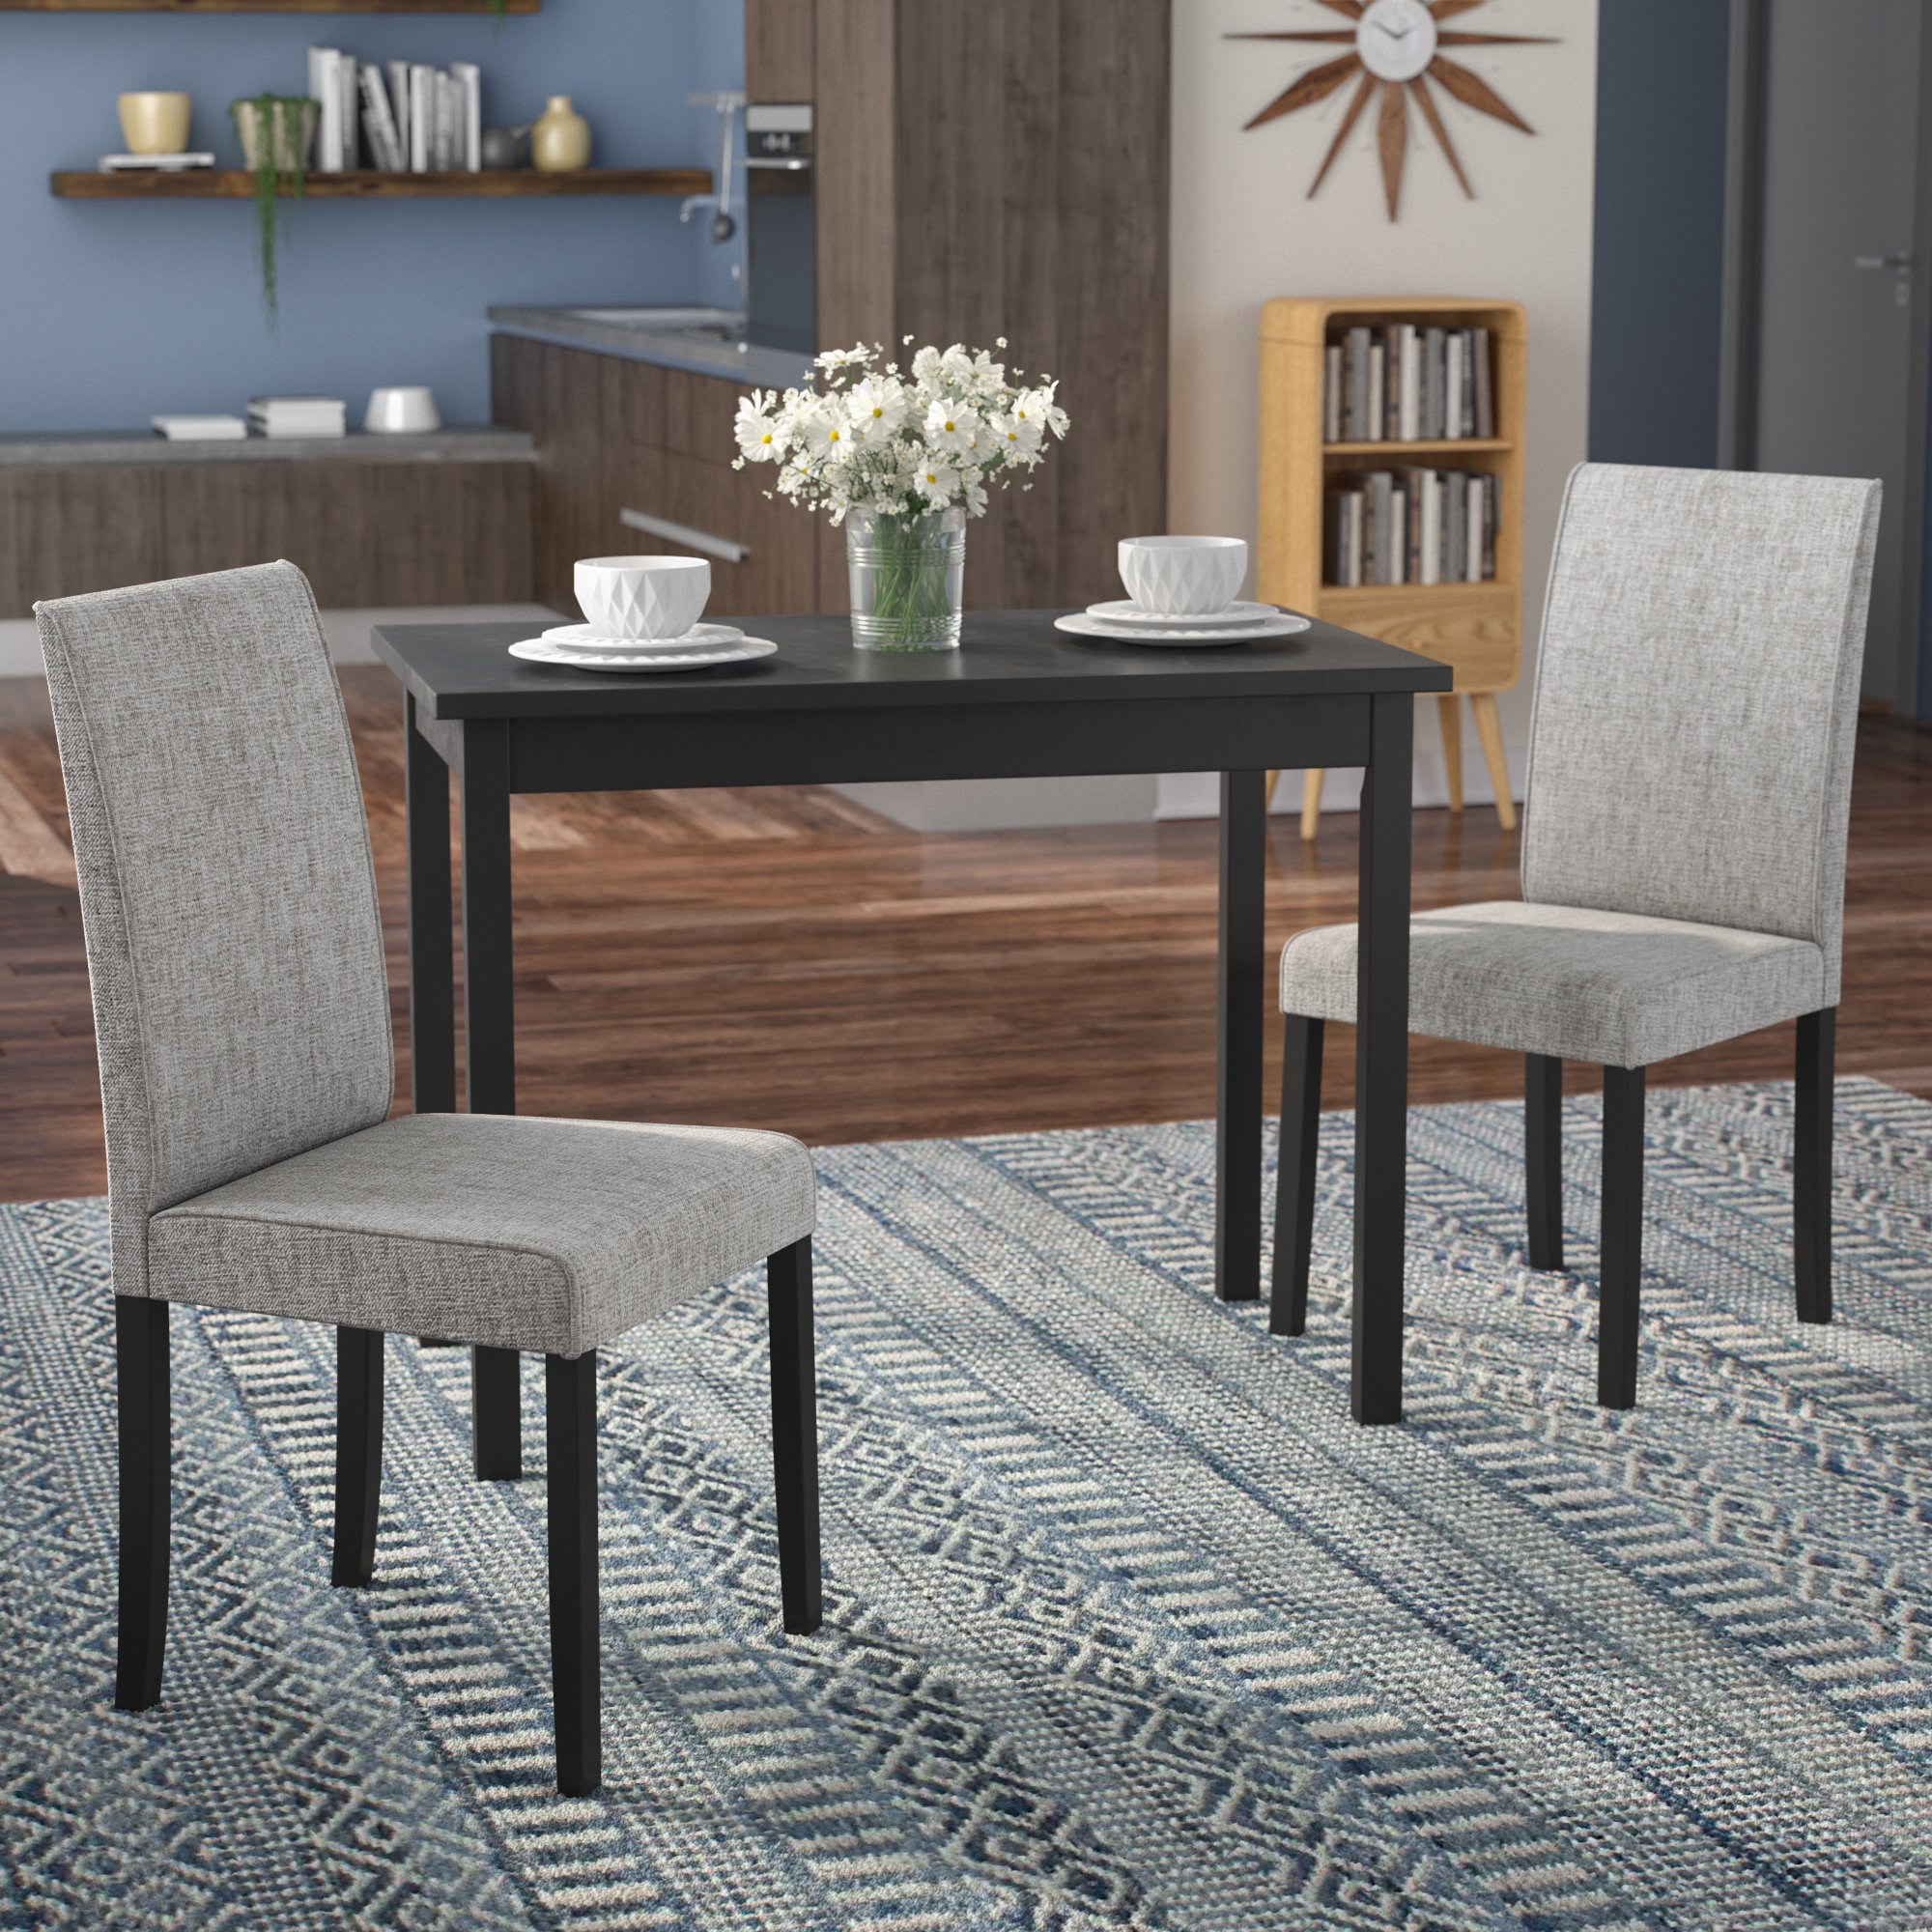 Well Liked Darvell 3 Piece Dining Set Pertaining To Kinsler 3 Piece Bistro Sets (View 18 of 20)